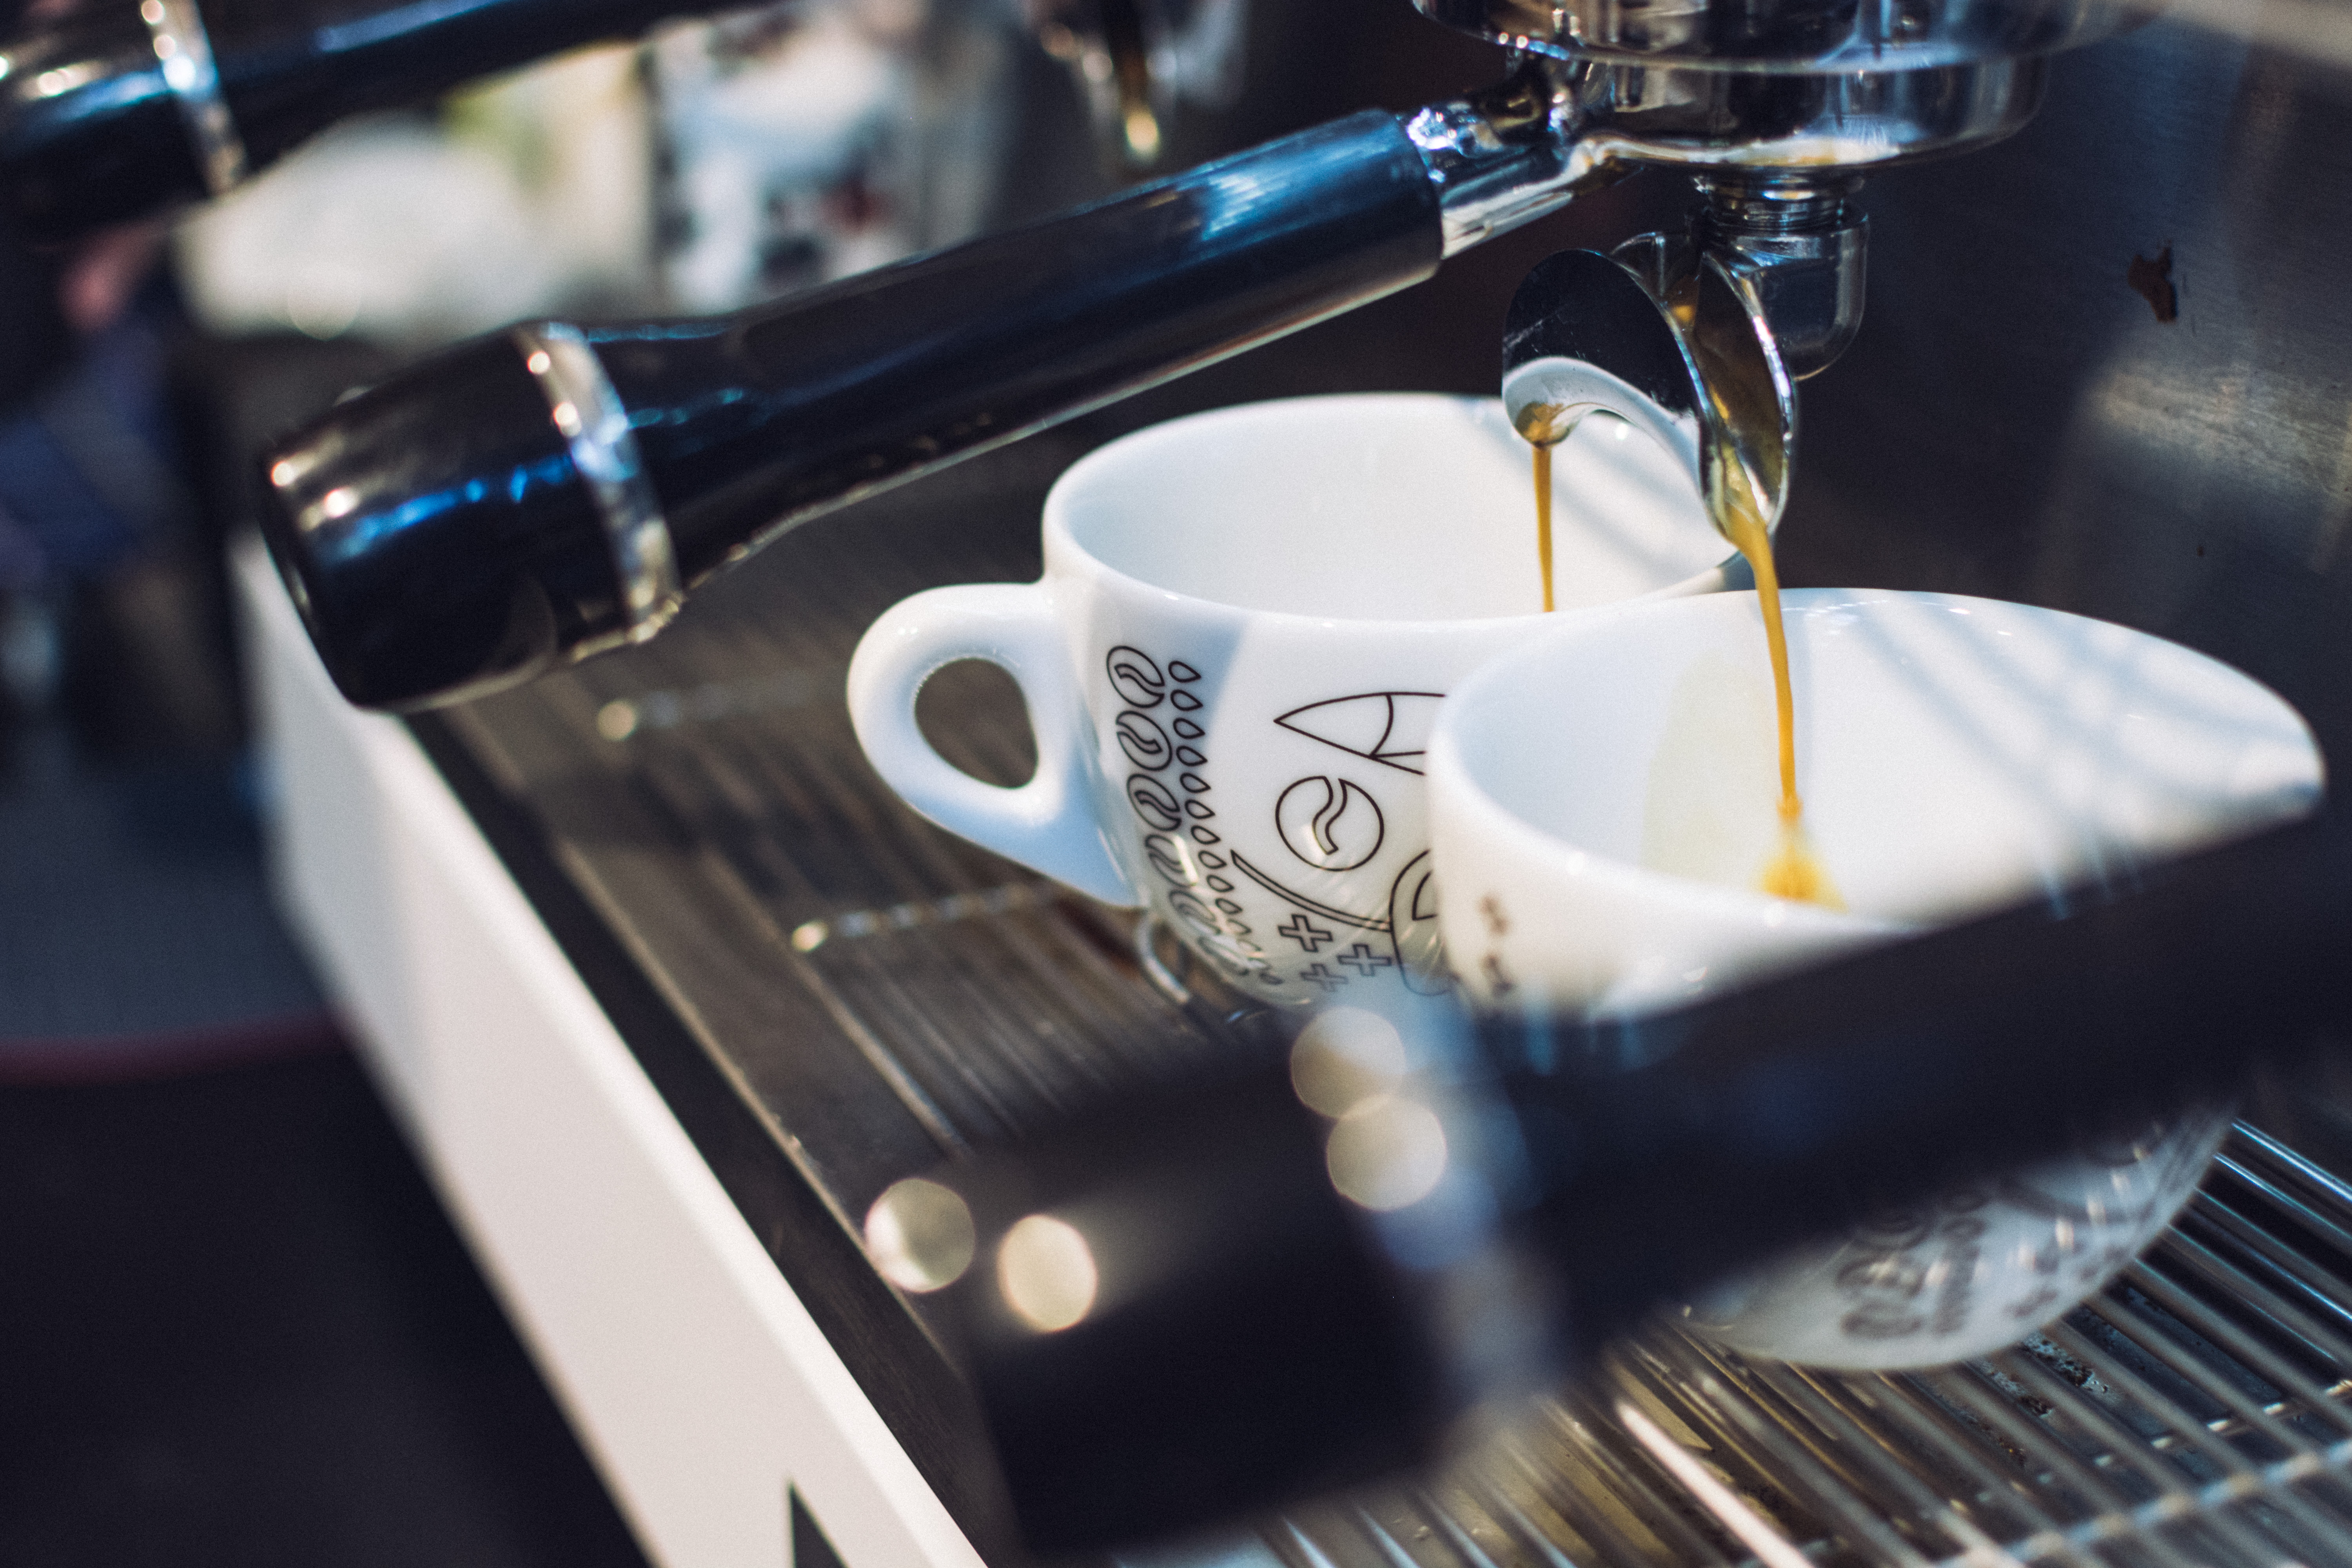 Get ready for your espresso